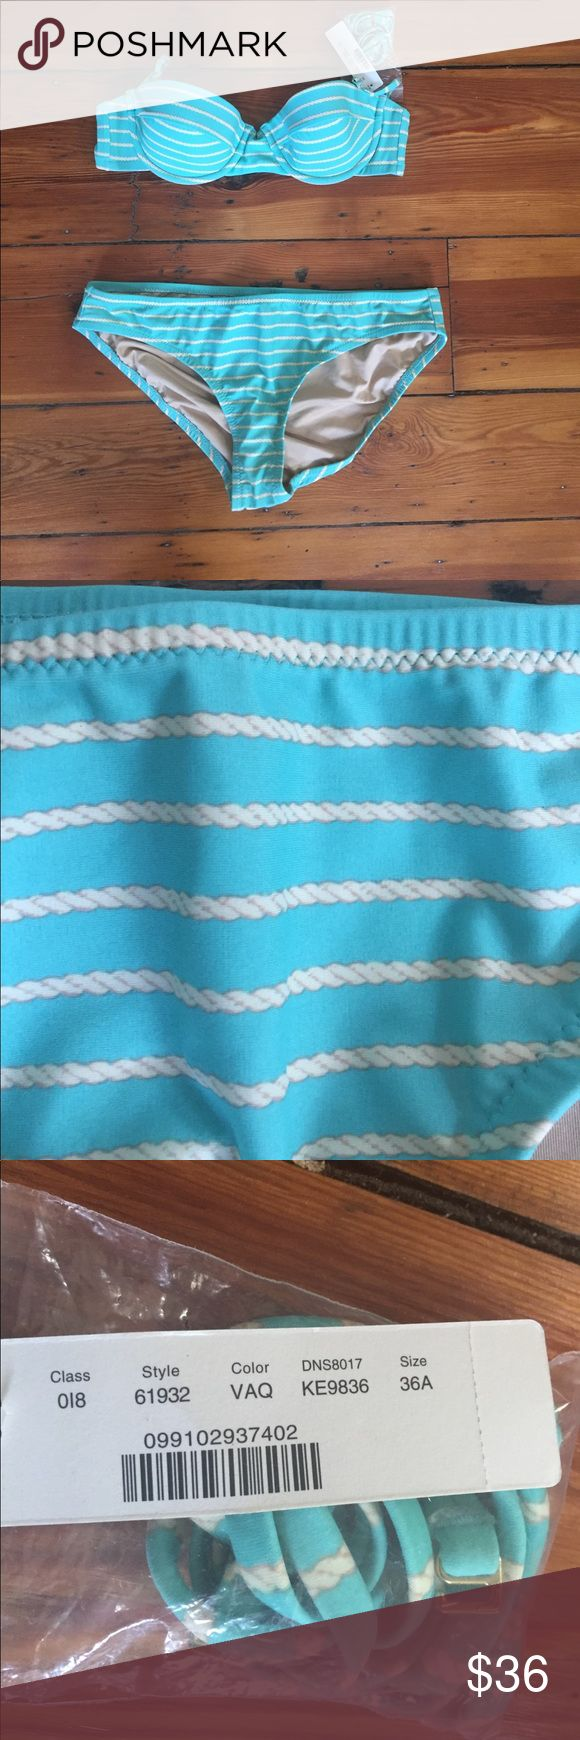 Super cute turquoise and cream bikini! NWT Turquoise bikini by J. Crew. Size 36A top and size M bottoms. Extra straps included. Hook closure in back. J. Crew Swim Bikinis